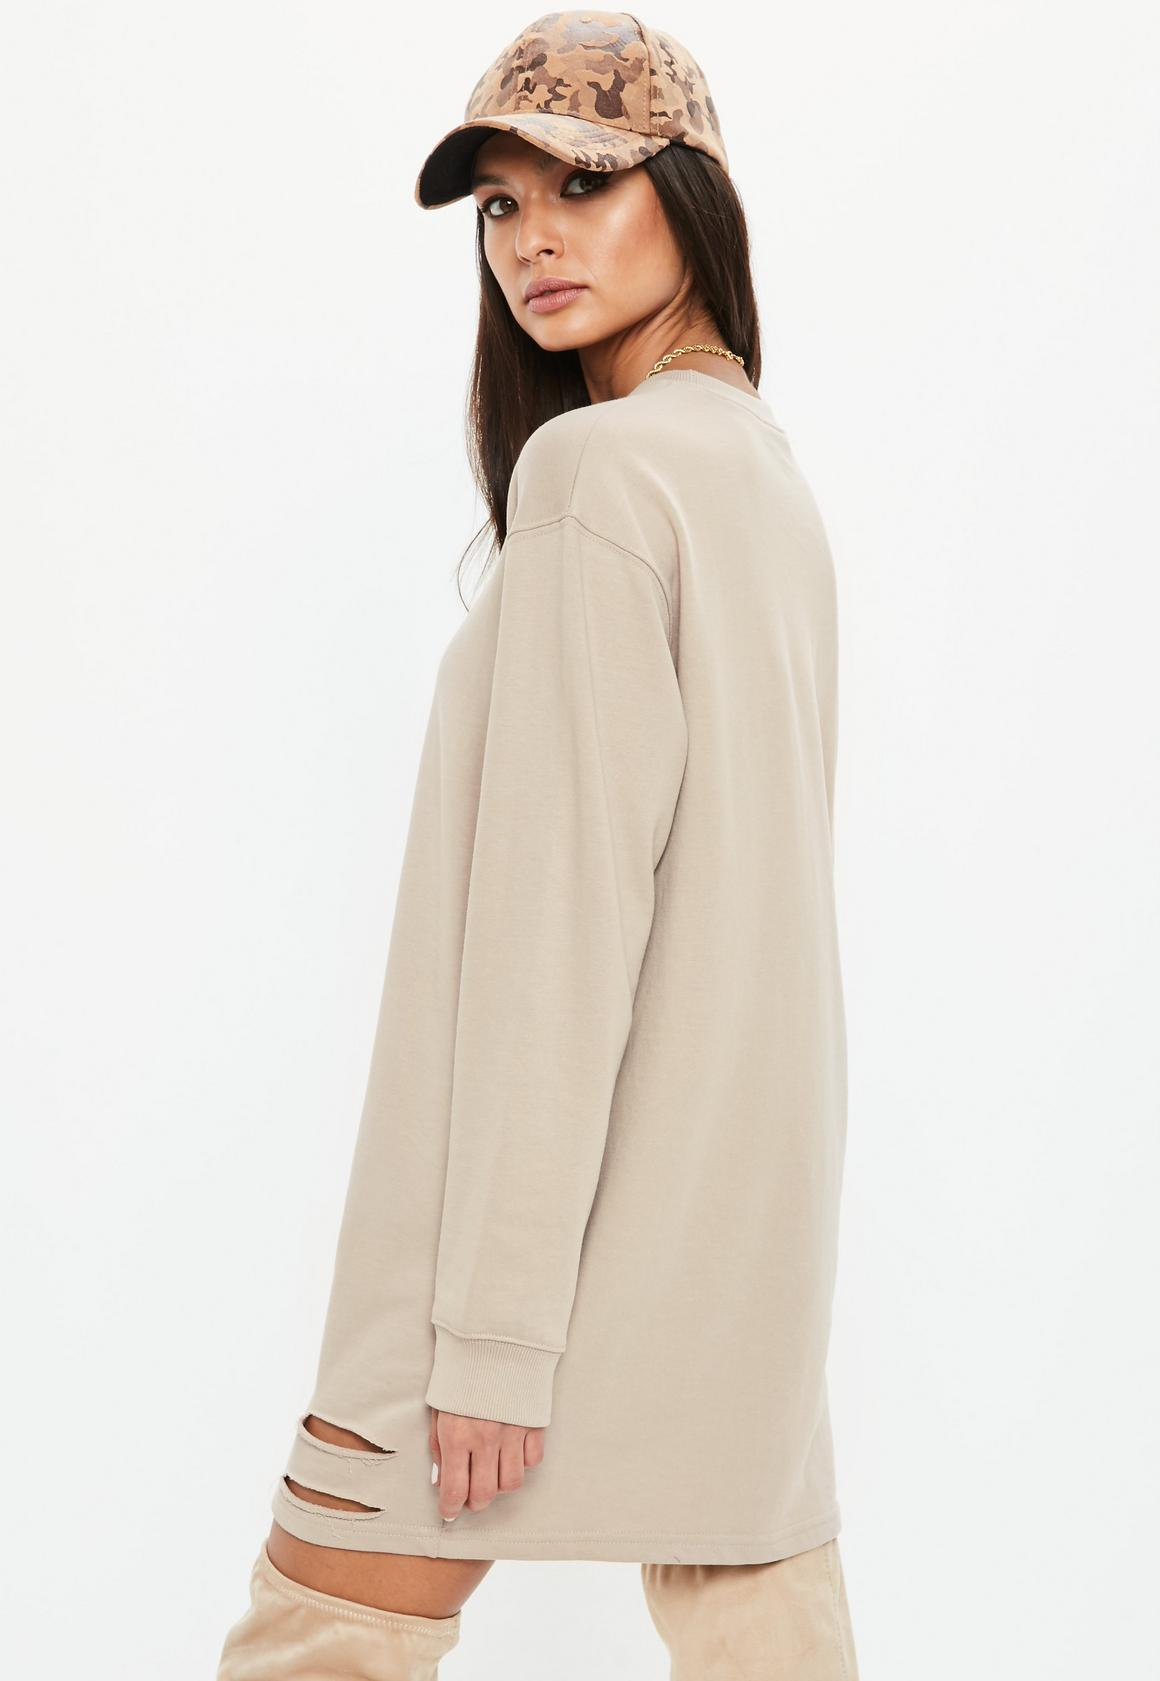 98ce35a4d01 Missguided - Nude Ripped Oversized Sweater Dress